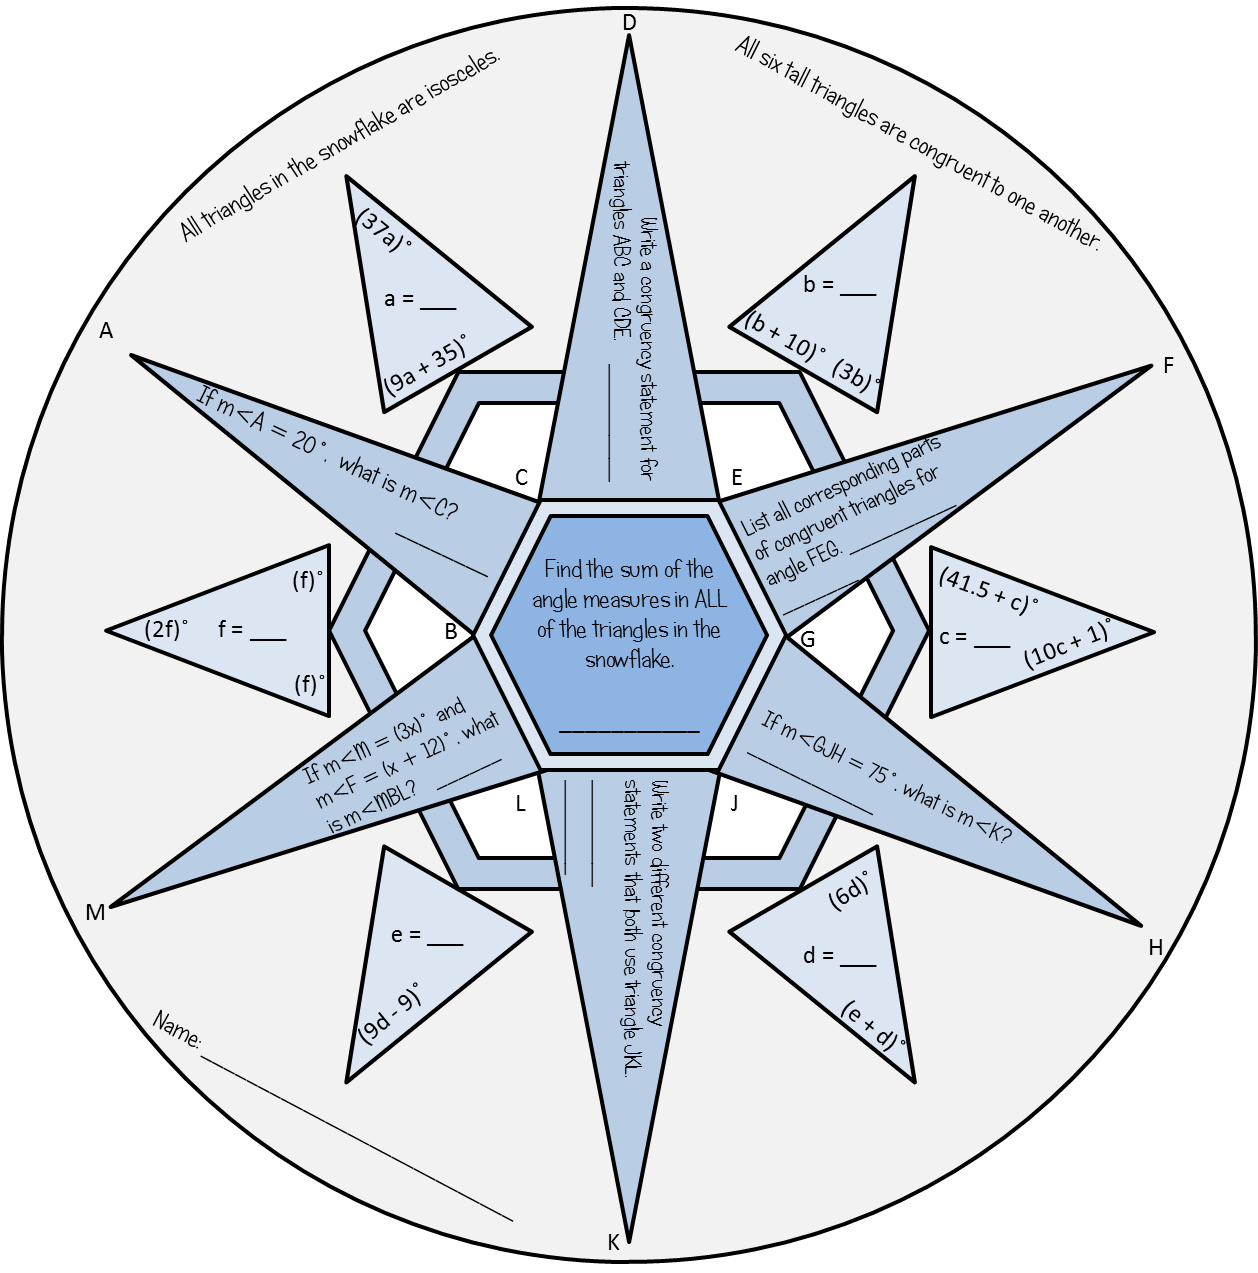 Free Congruent Triangles Practice Snowflake For Your High School Geometry Class Cut Around The